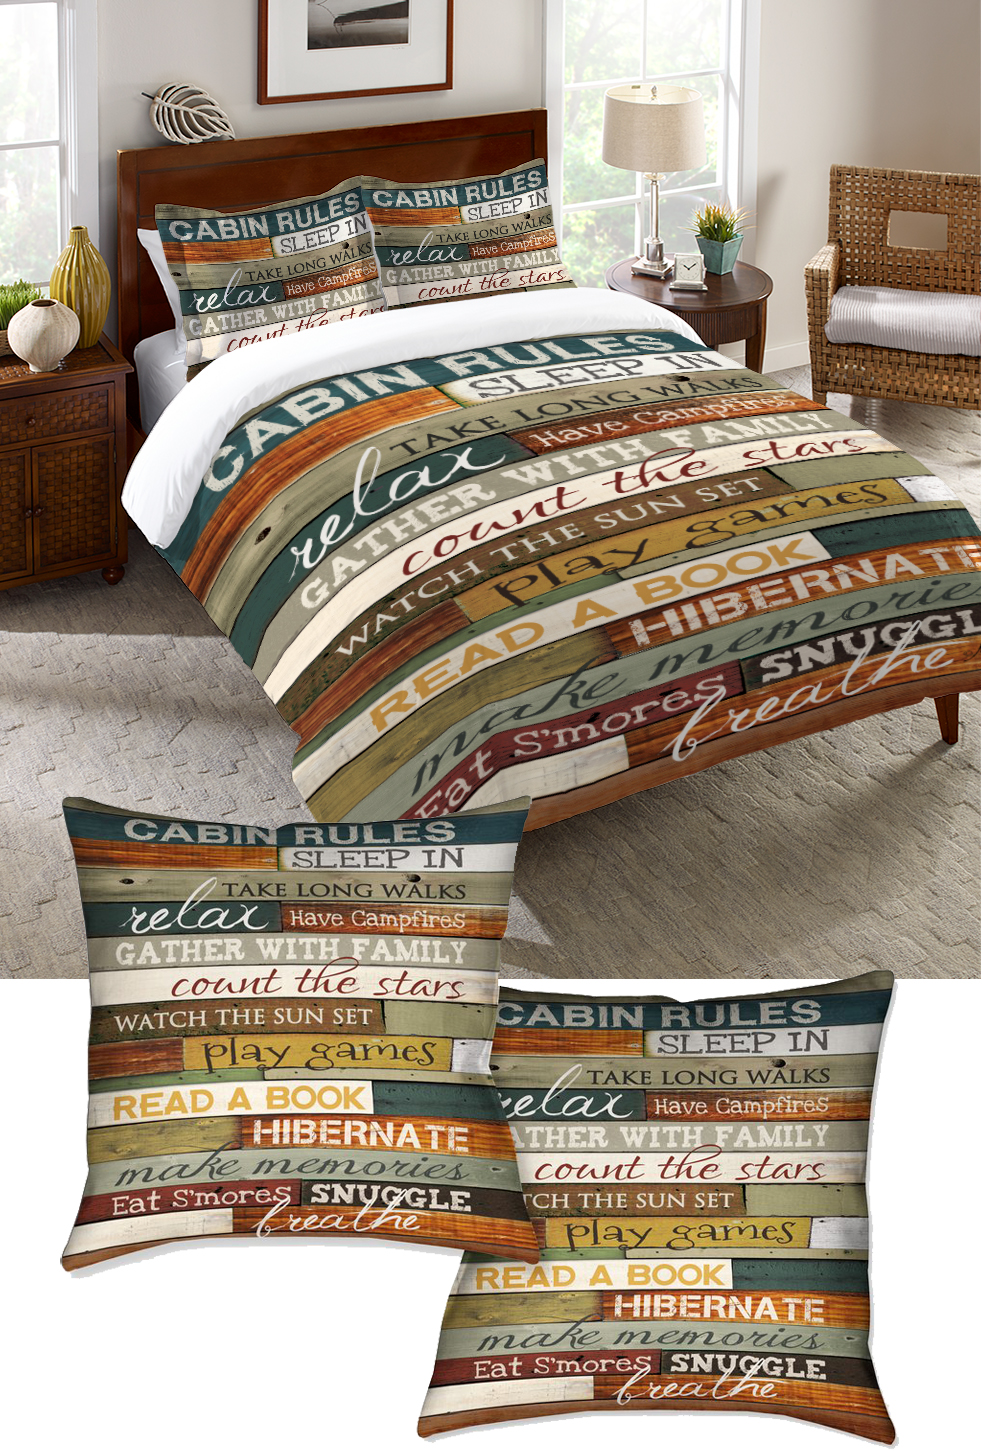 Cabin Rules Bedding